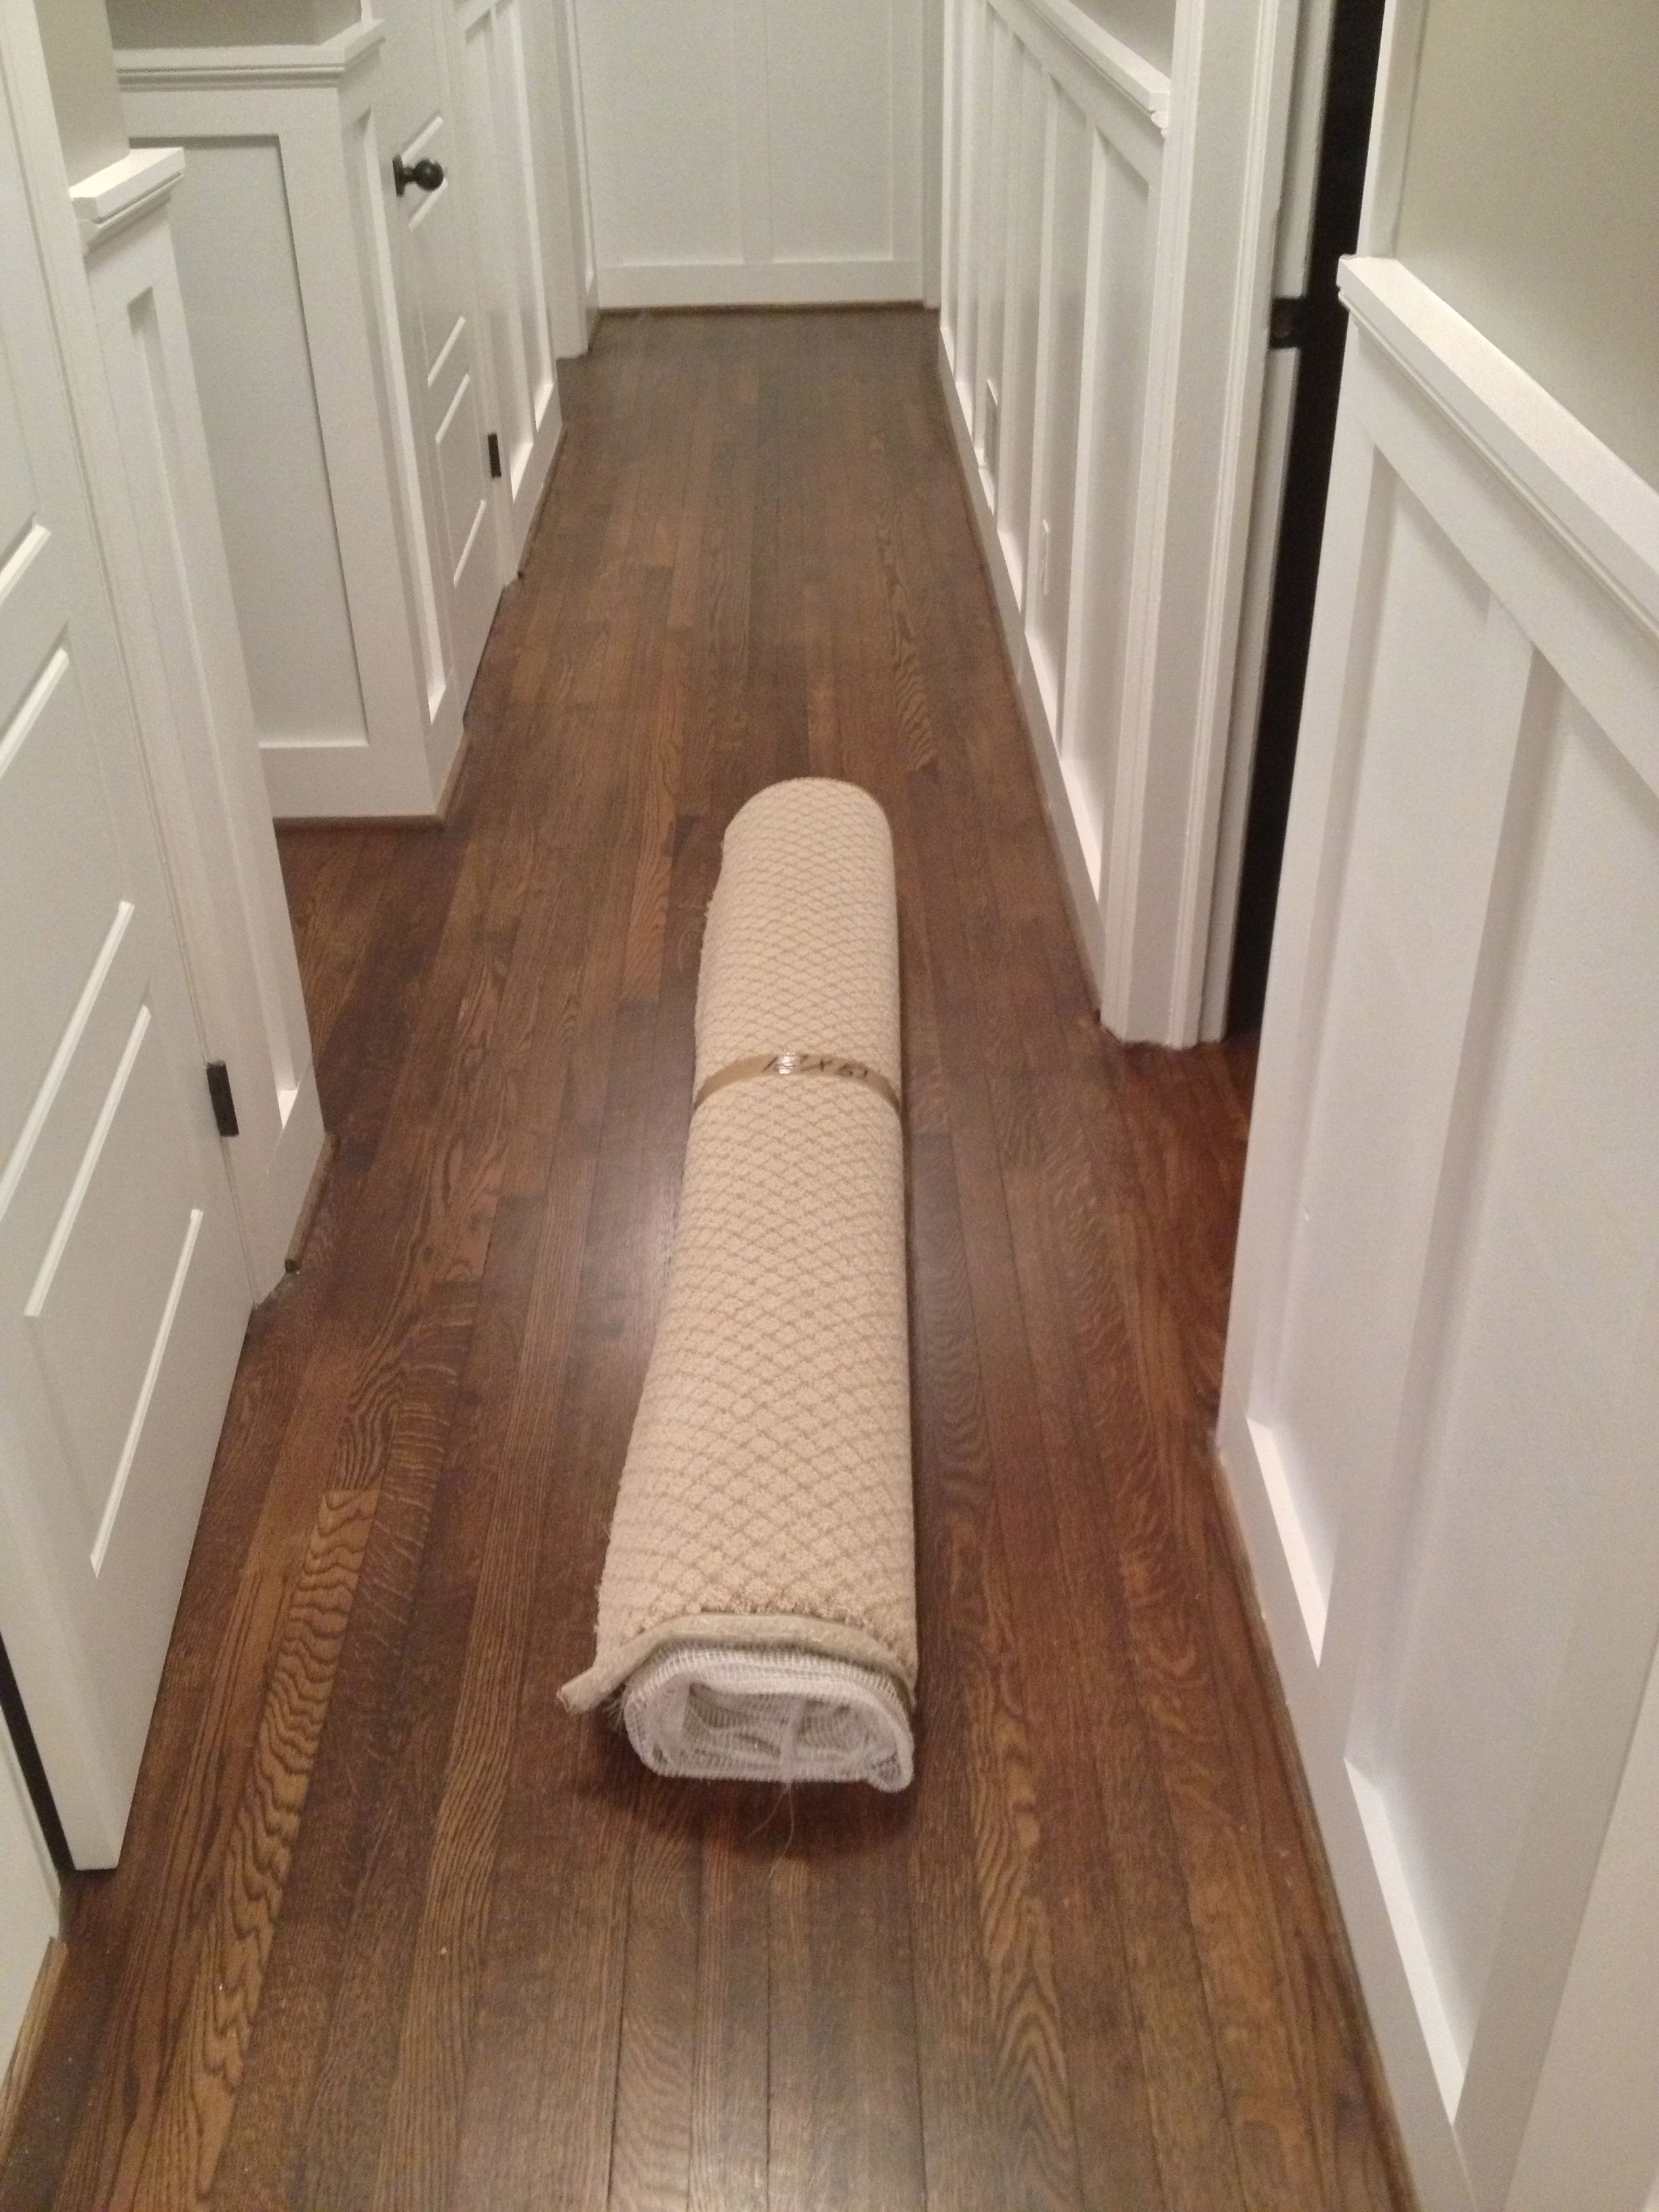 Making a rug out of carpet - Rug Remnant Diy Make Own Hallway Runner Out Of Remnant